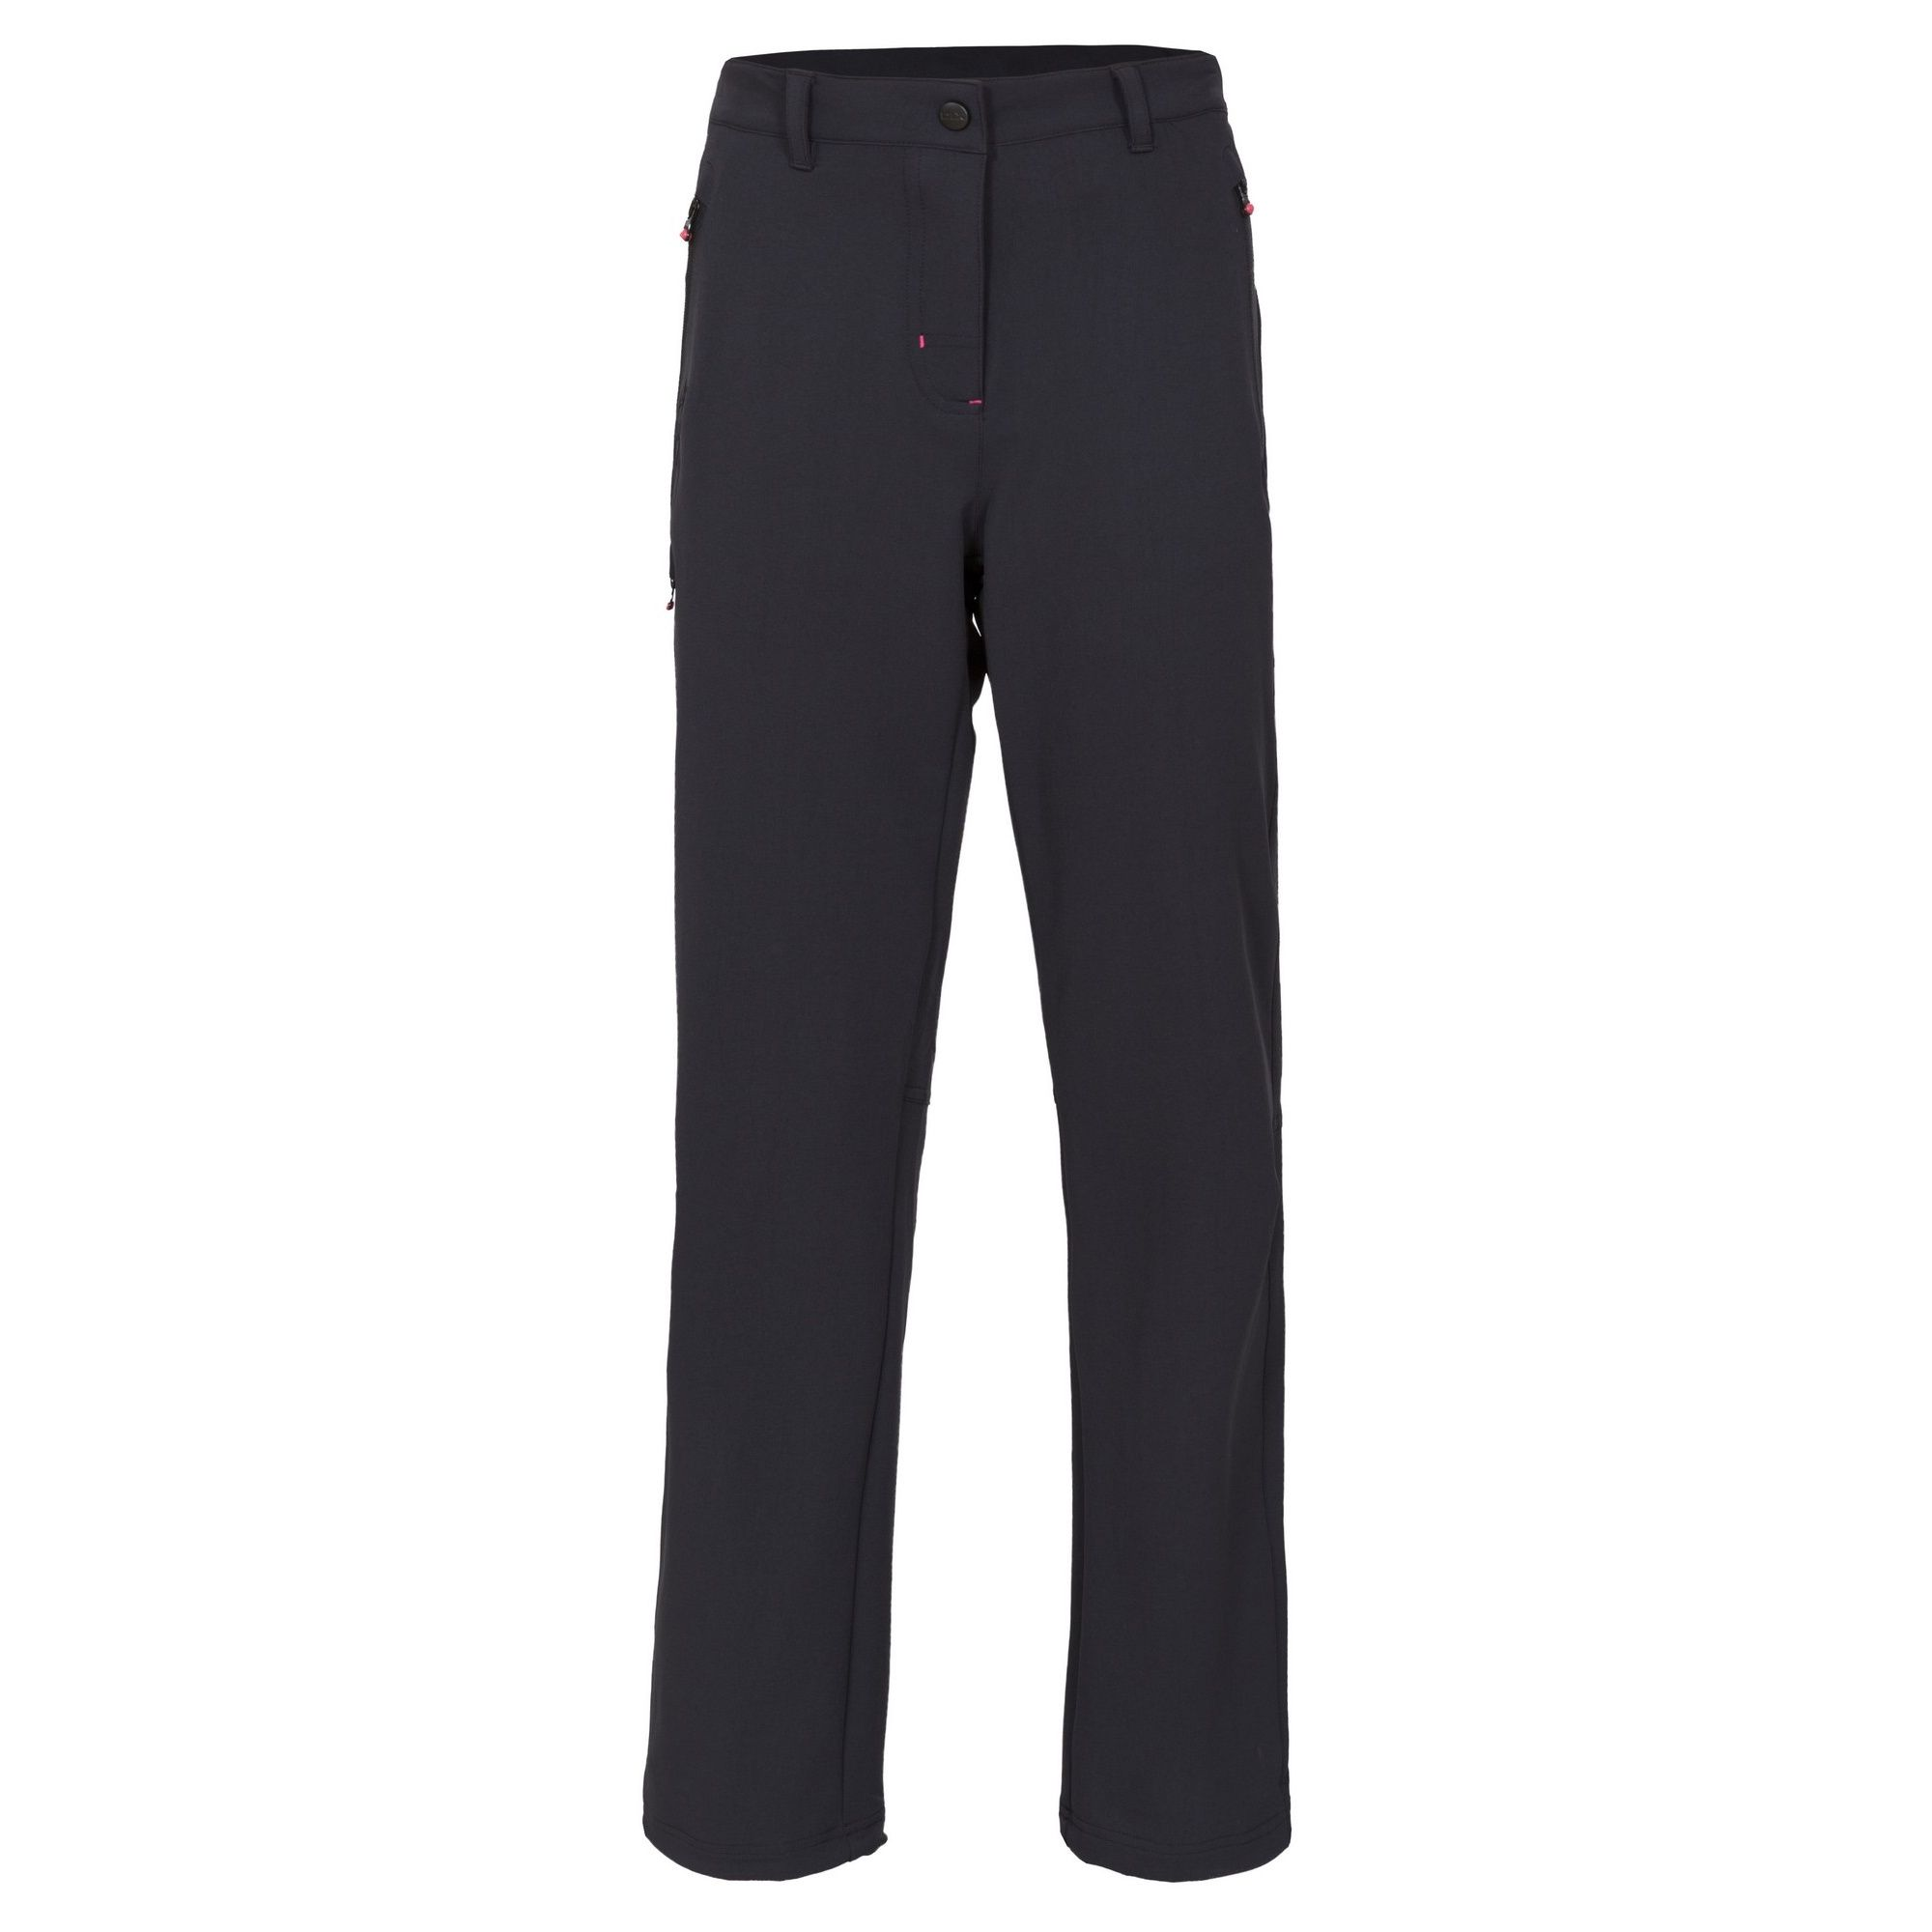 Trespass Womens/Ladies Swerve Outdoor Trousers